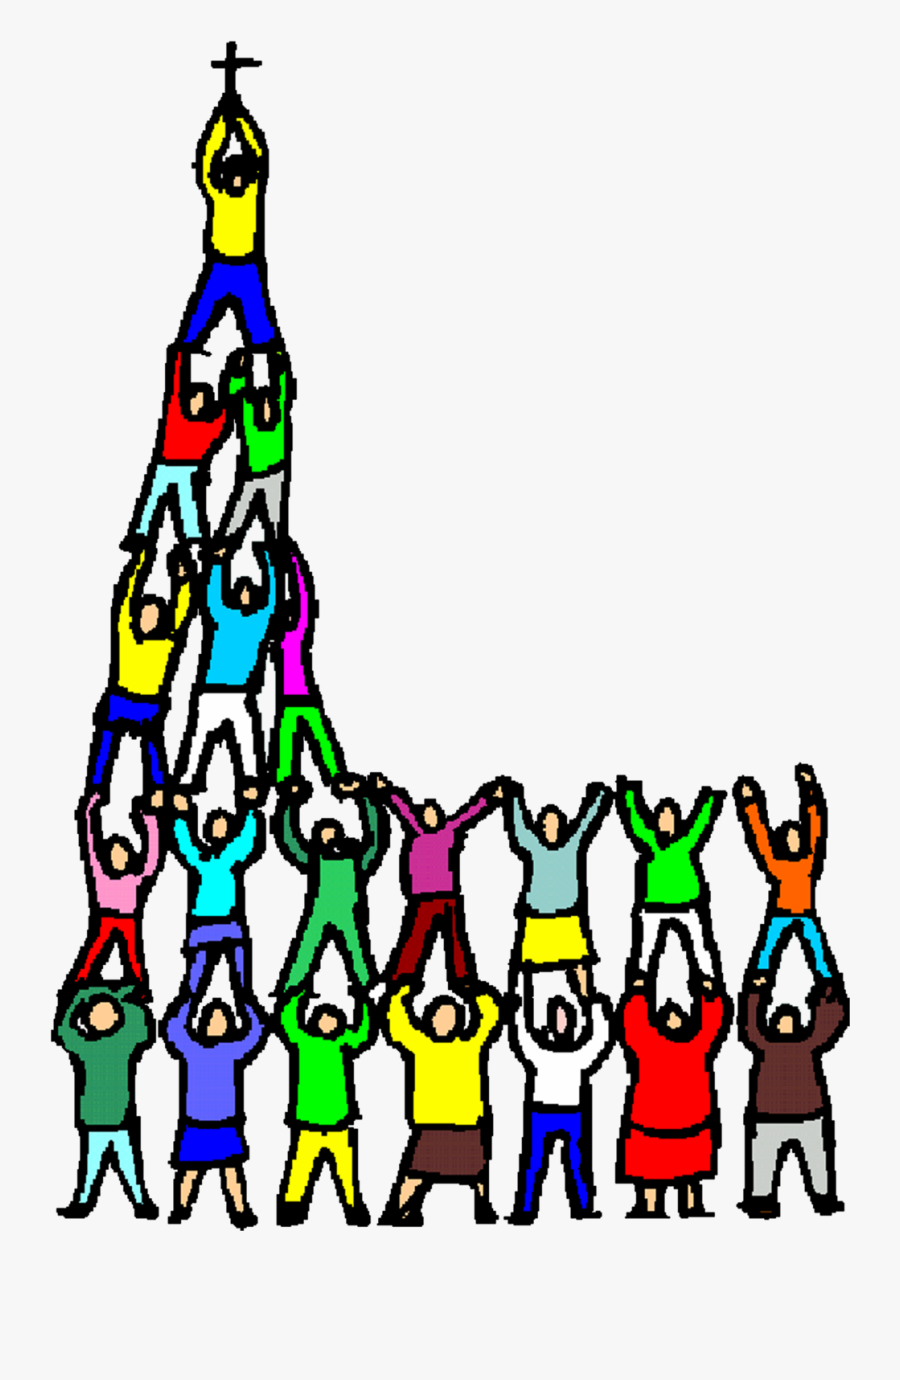 What Lovely Words To Begin The Sermon This Morning - Church Body Of Christ, Transparent Clipart